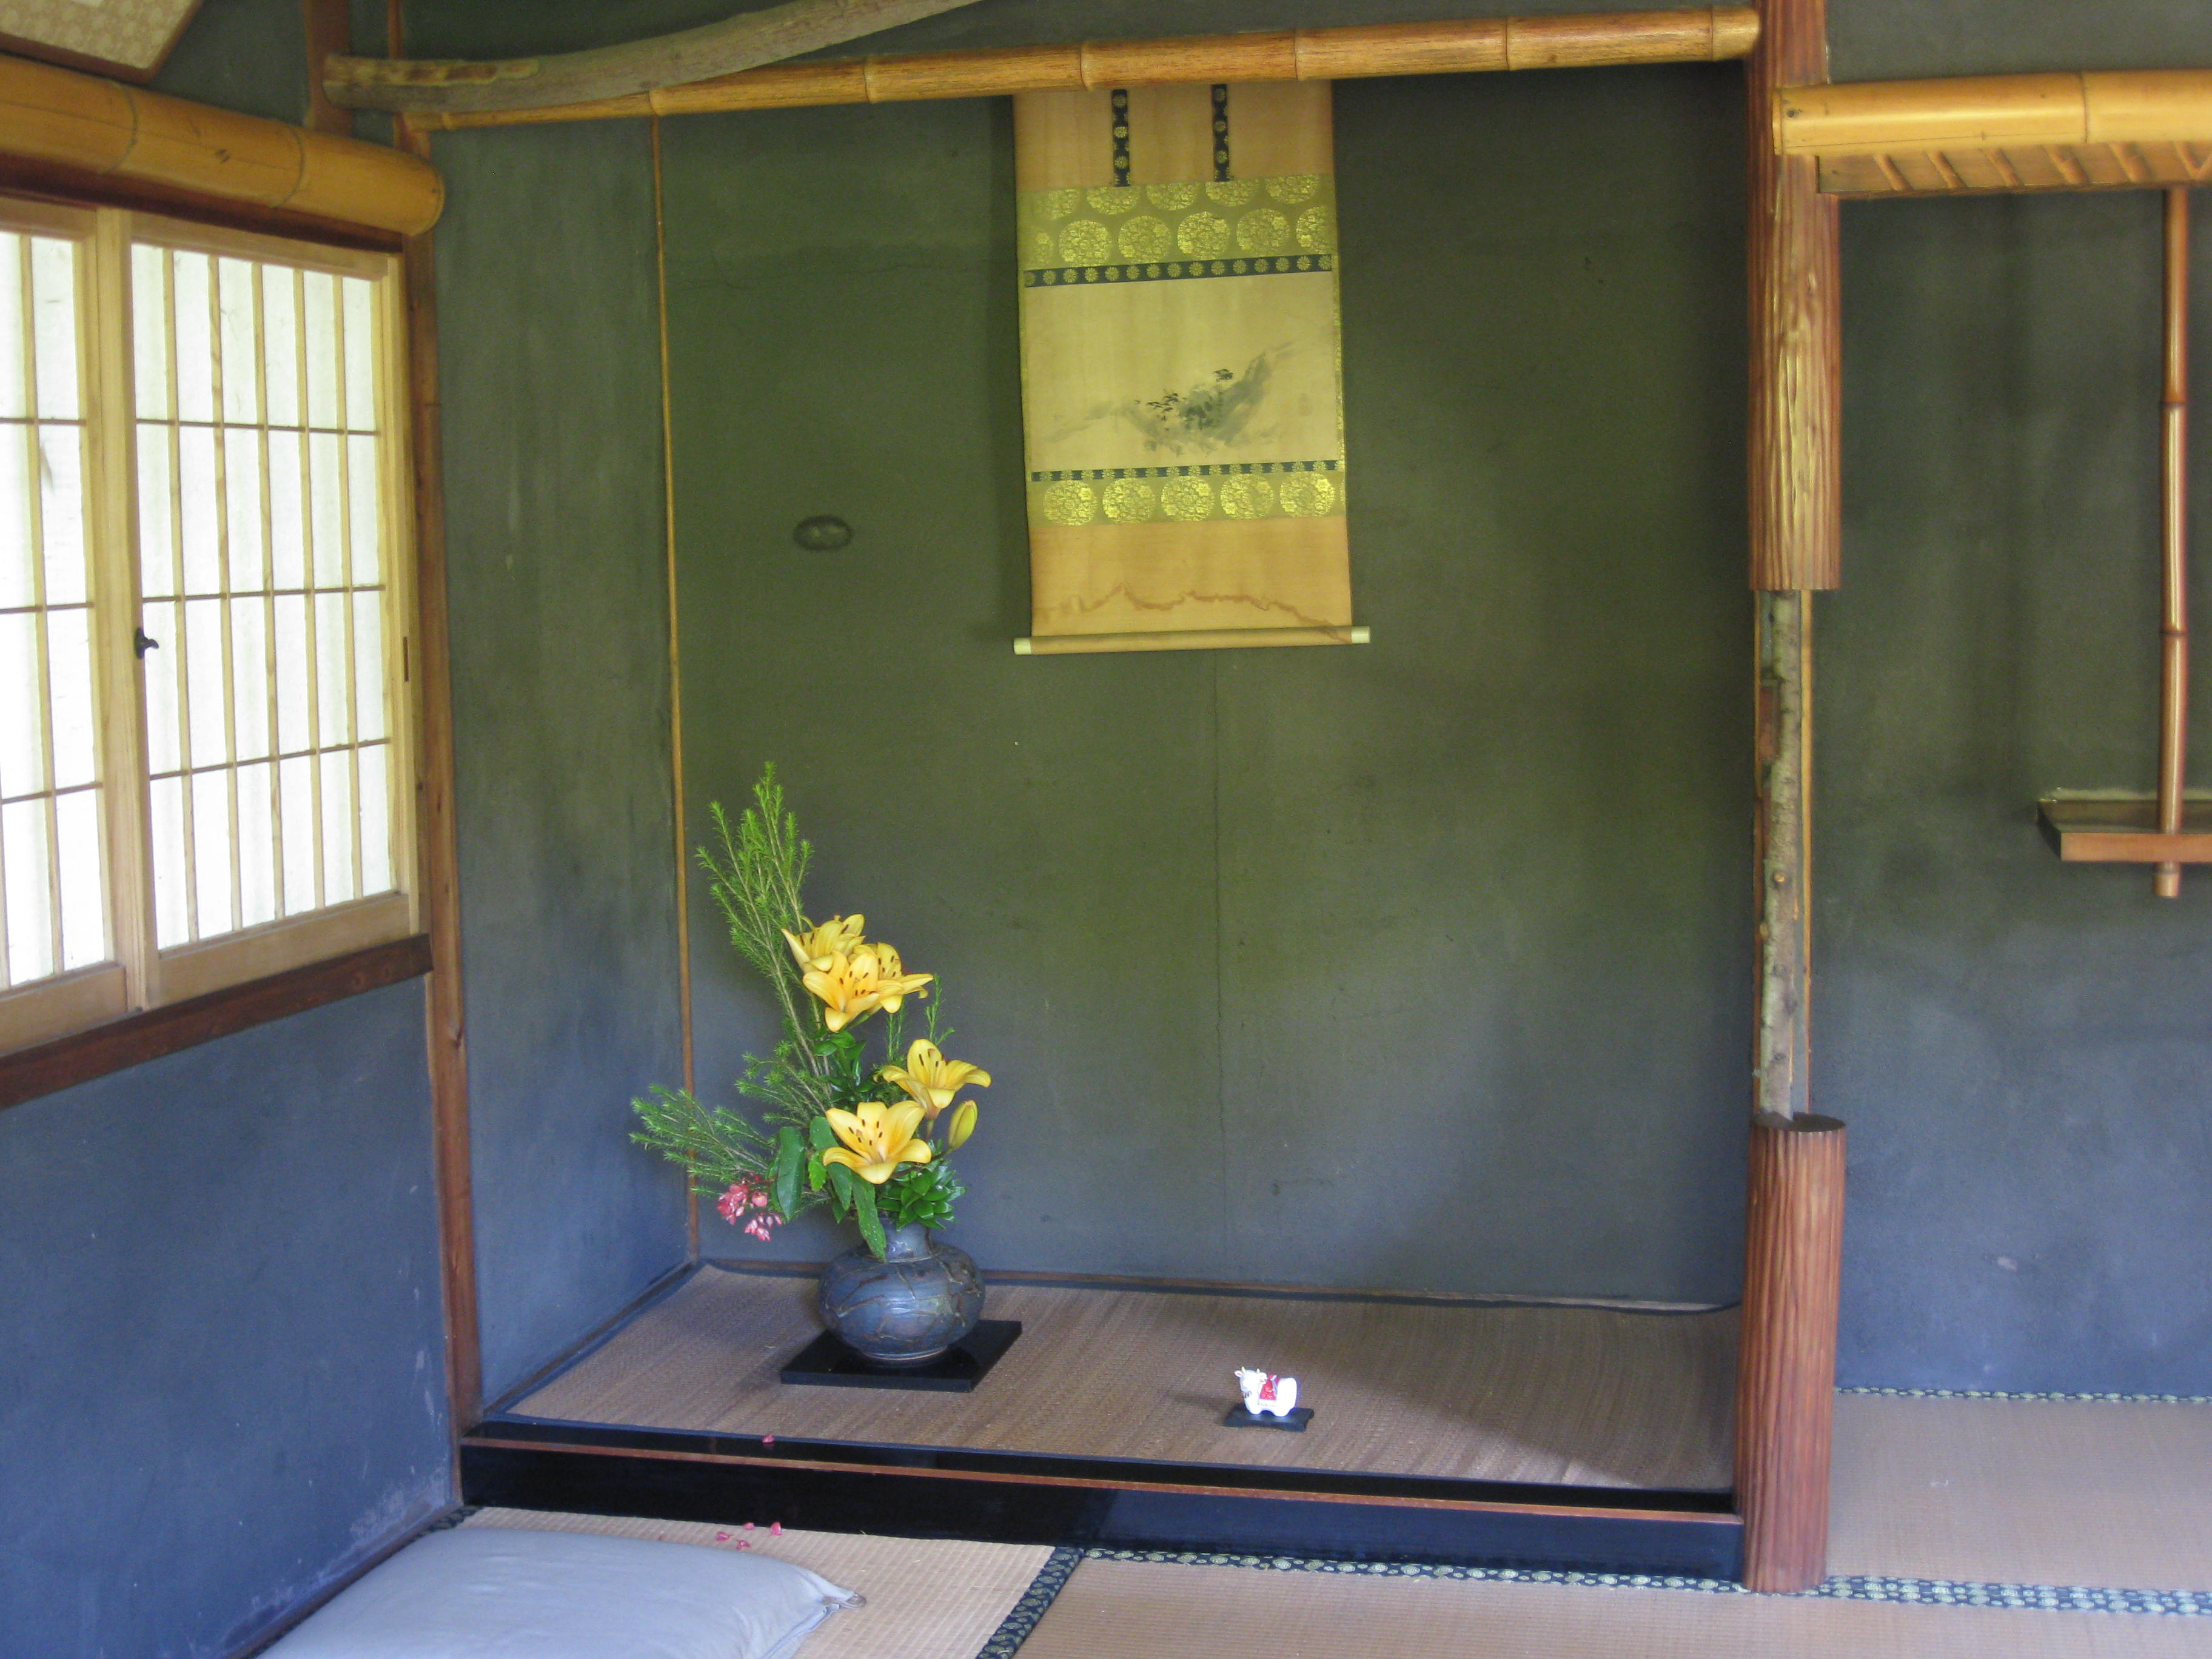 japanese tea house interior photo - 2